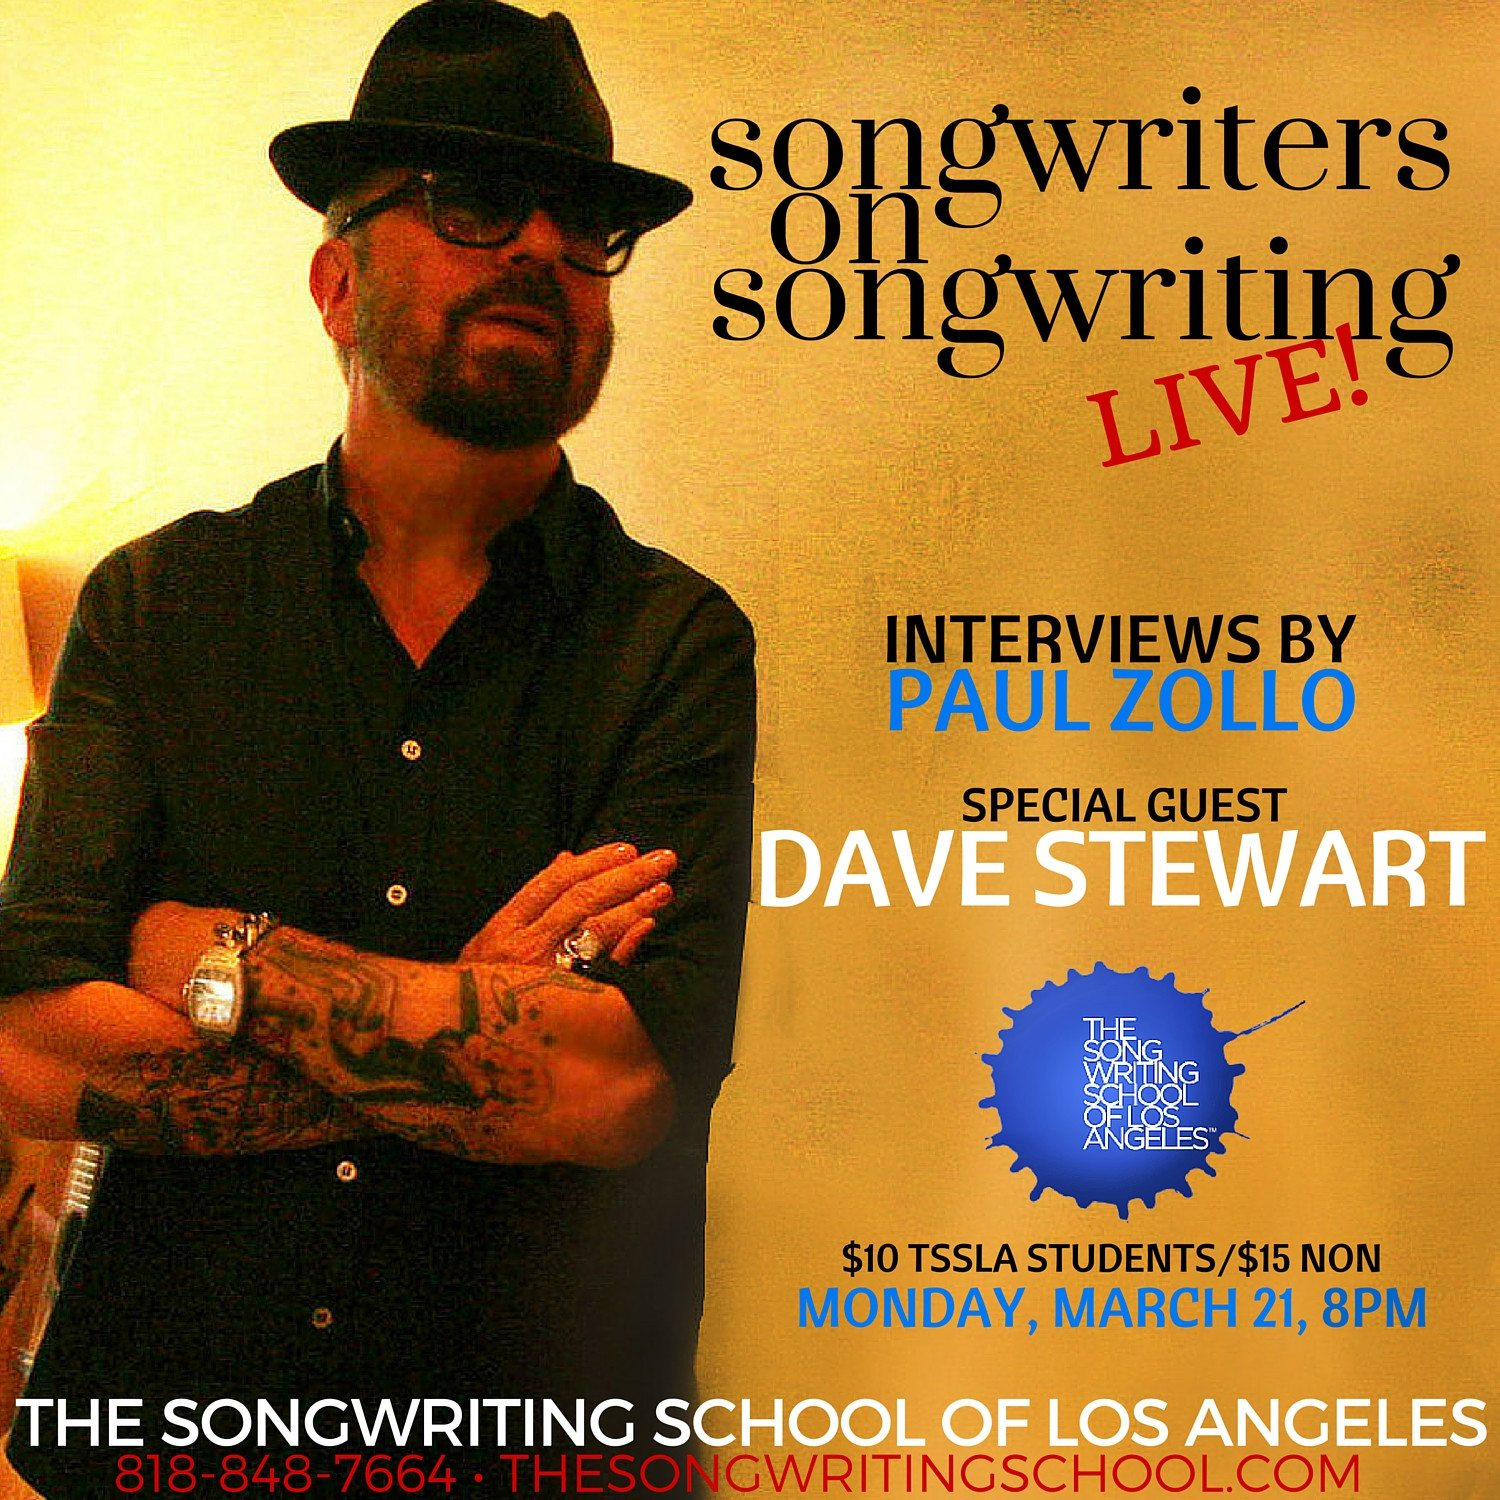 Dave Stewart to be interviewed by Paul Zollo at the Songwriting School in Los Angeles